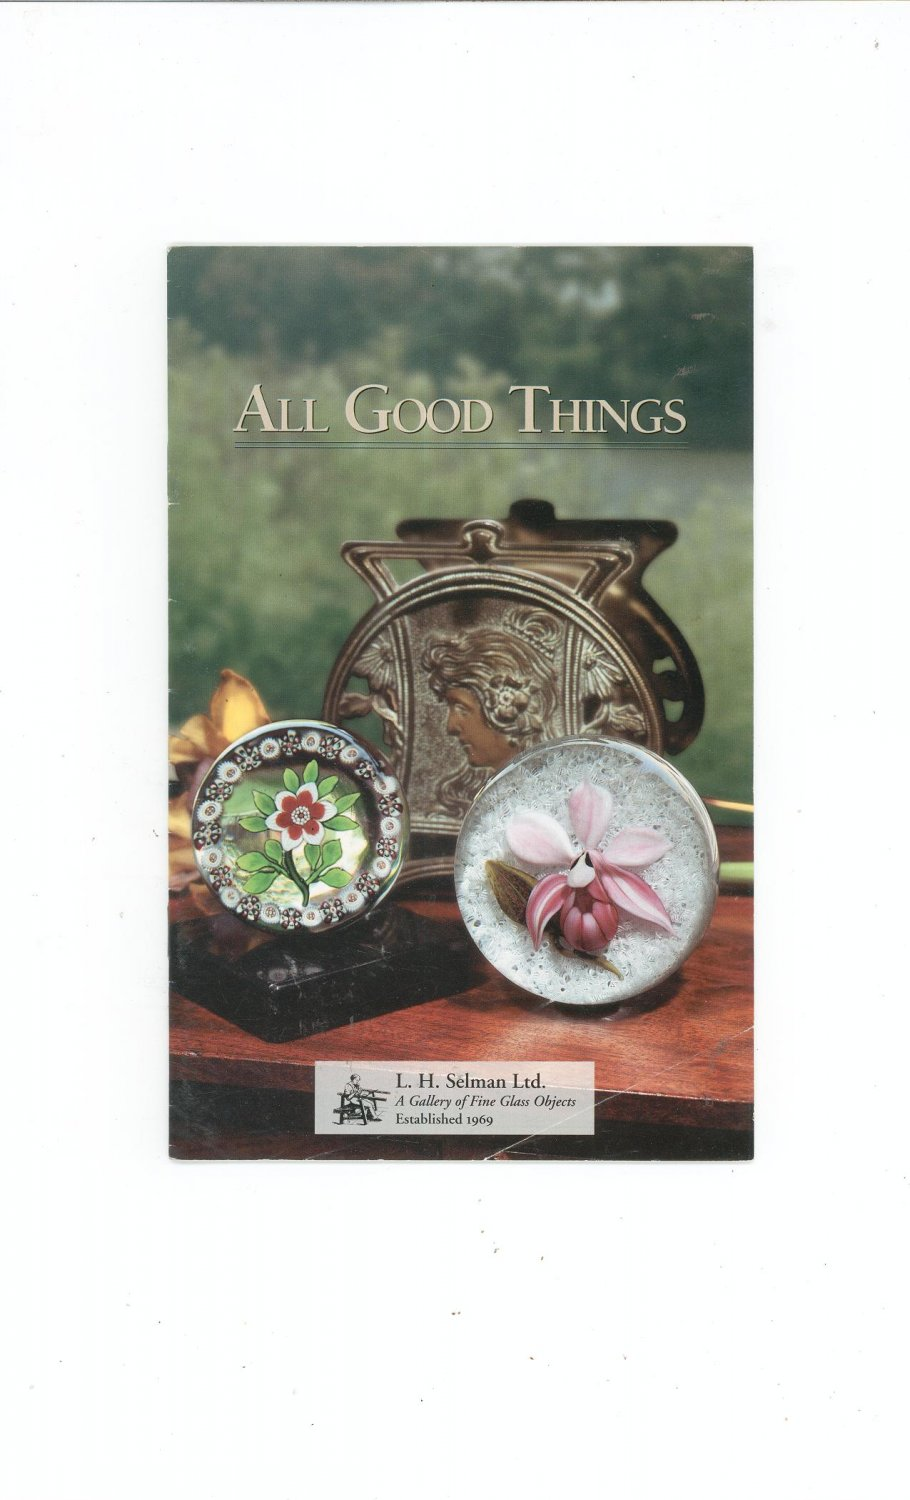 All Good Things  Catalog / Brochure by L. H. Selman Ltd. Paperweights